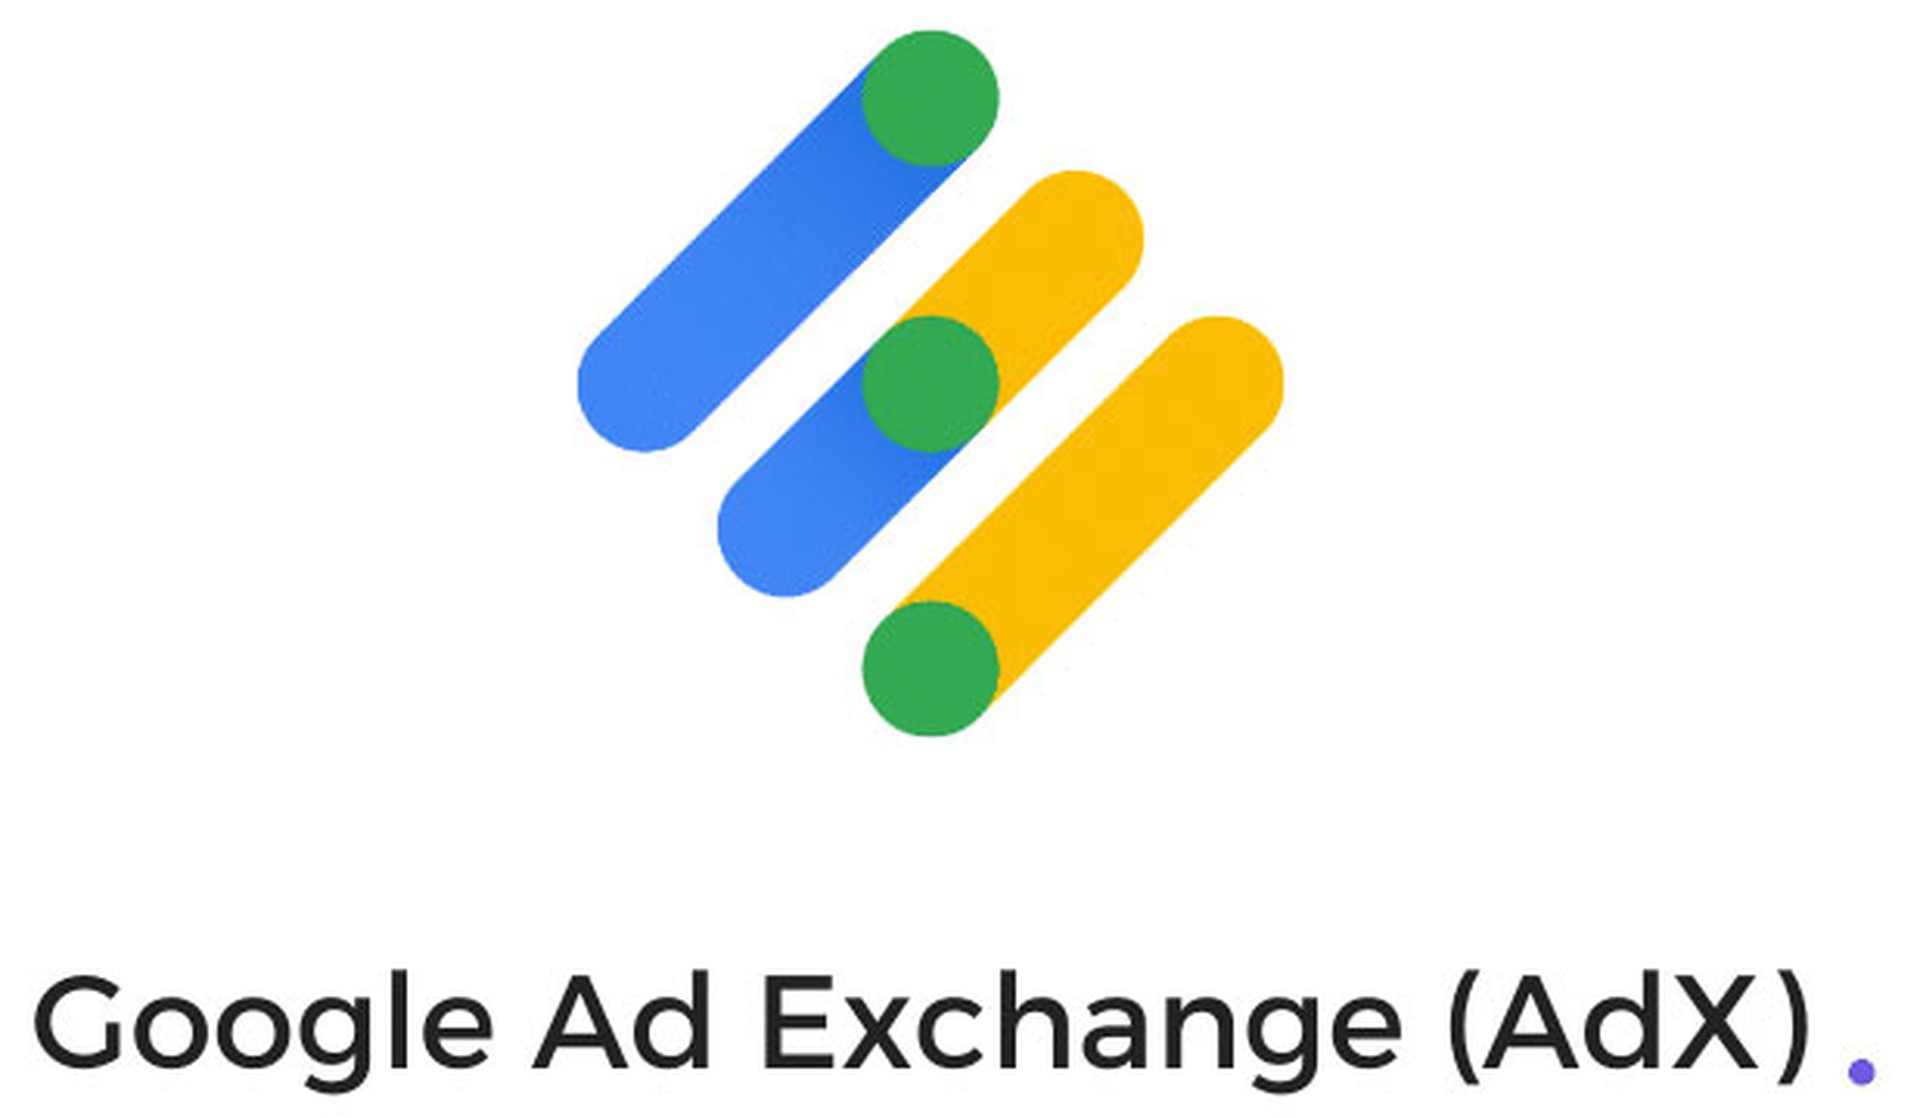 Google-Ad-Exchange.jpg